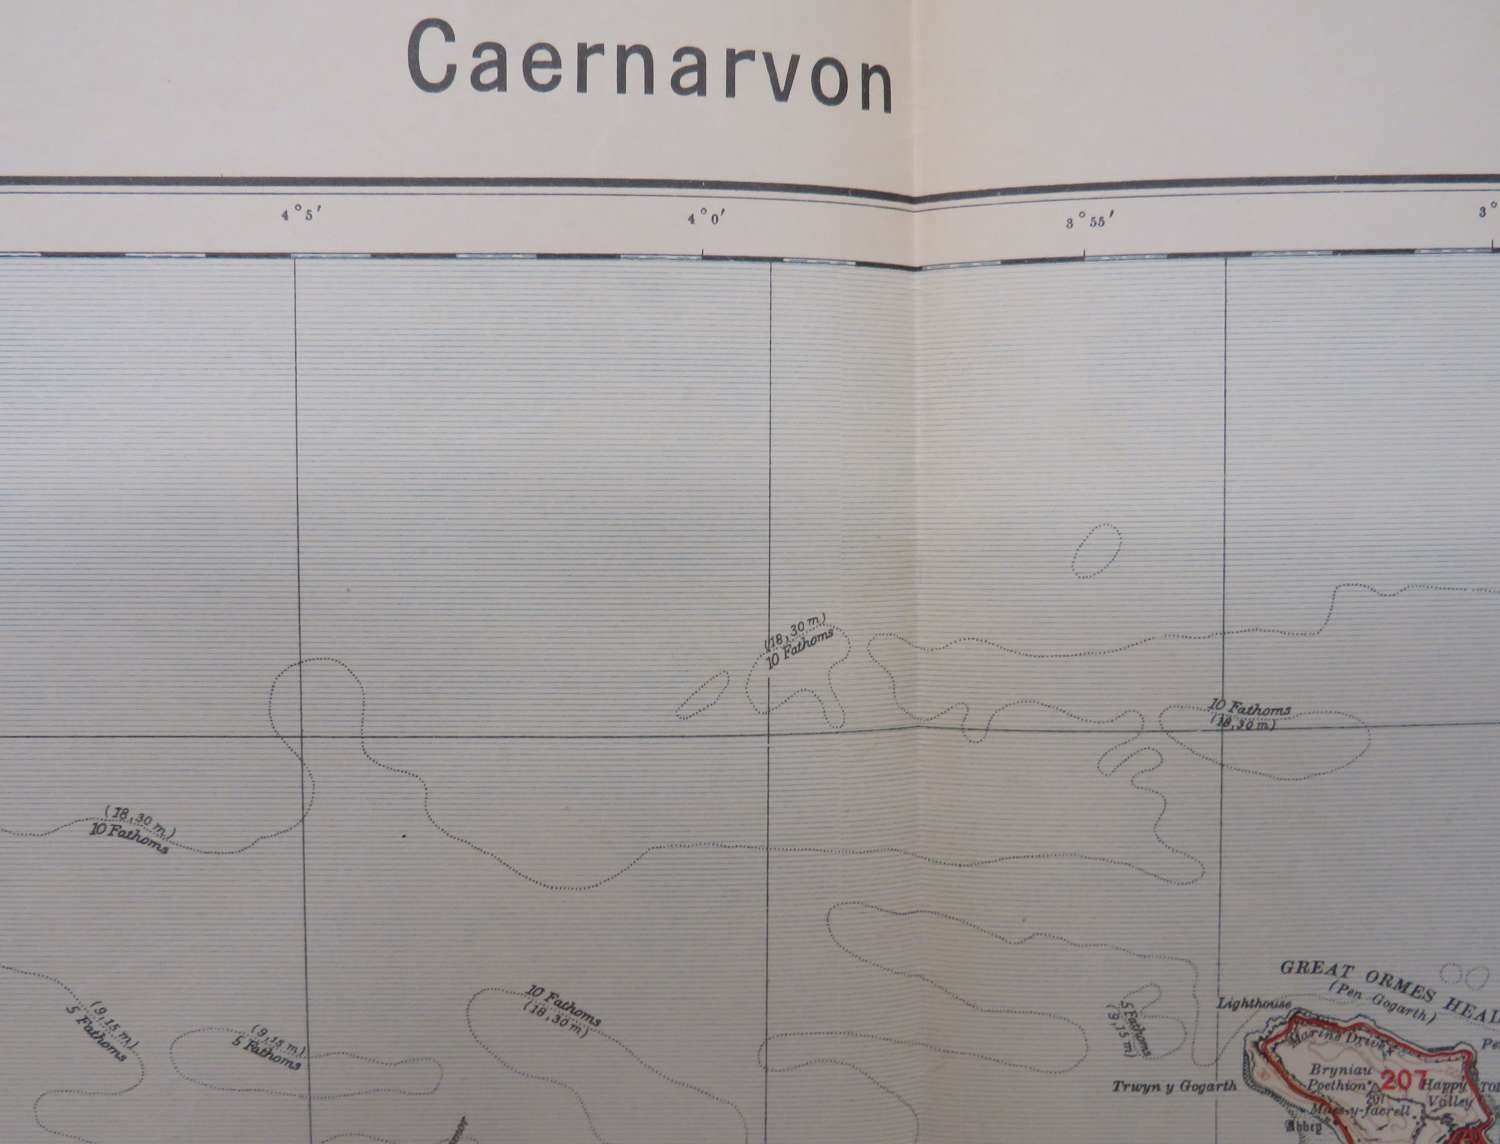 WW 2 German Invasion Map of Caernarvon